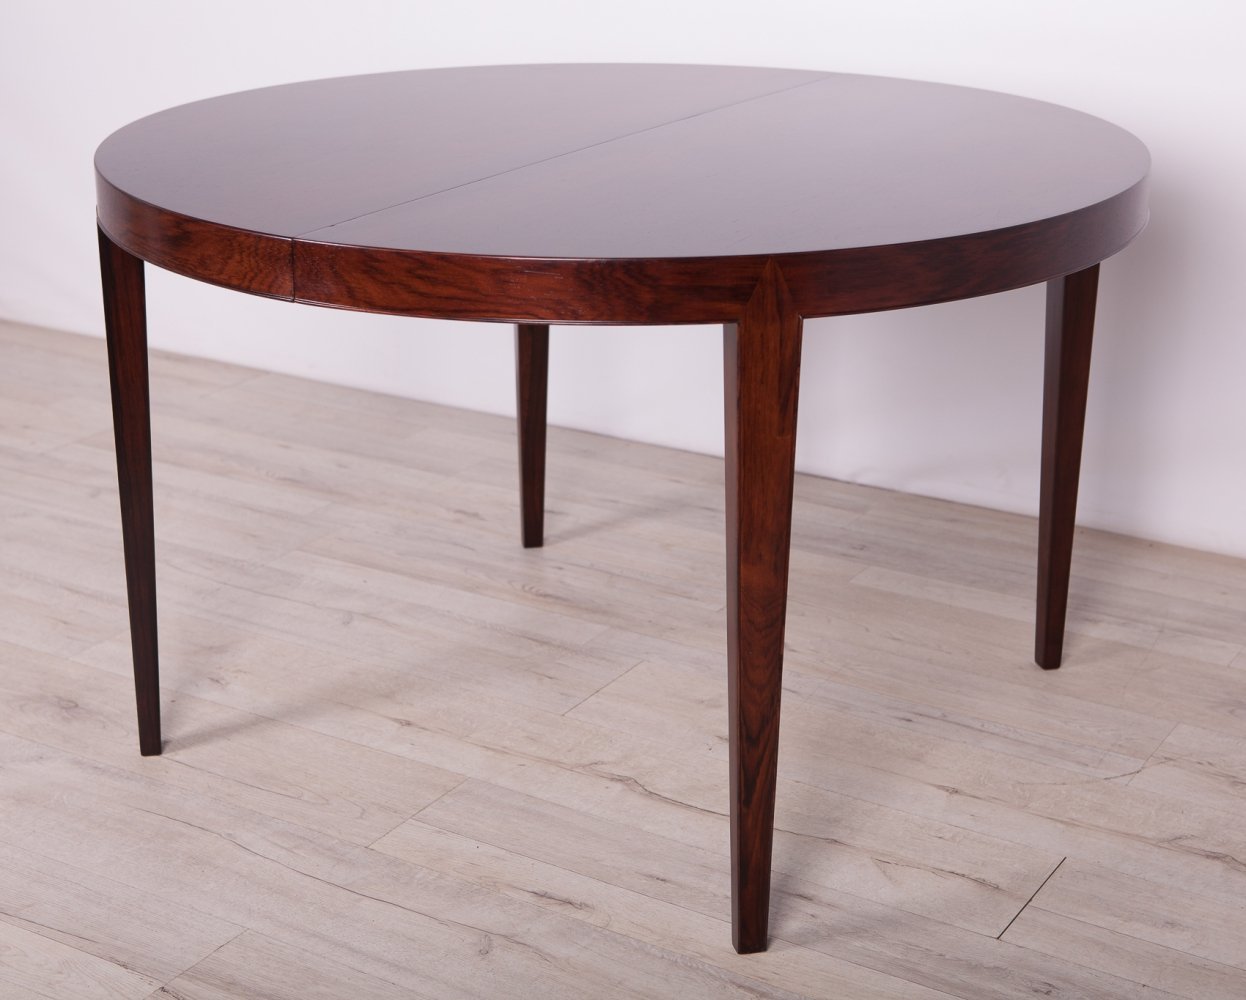 Mid-Century Round Rosewood Dining Table by S.Hansen for Haslev Møbelsnedkeri